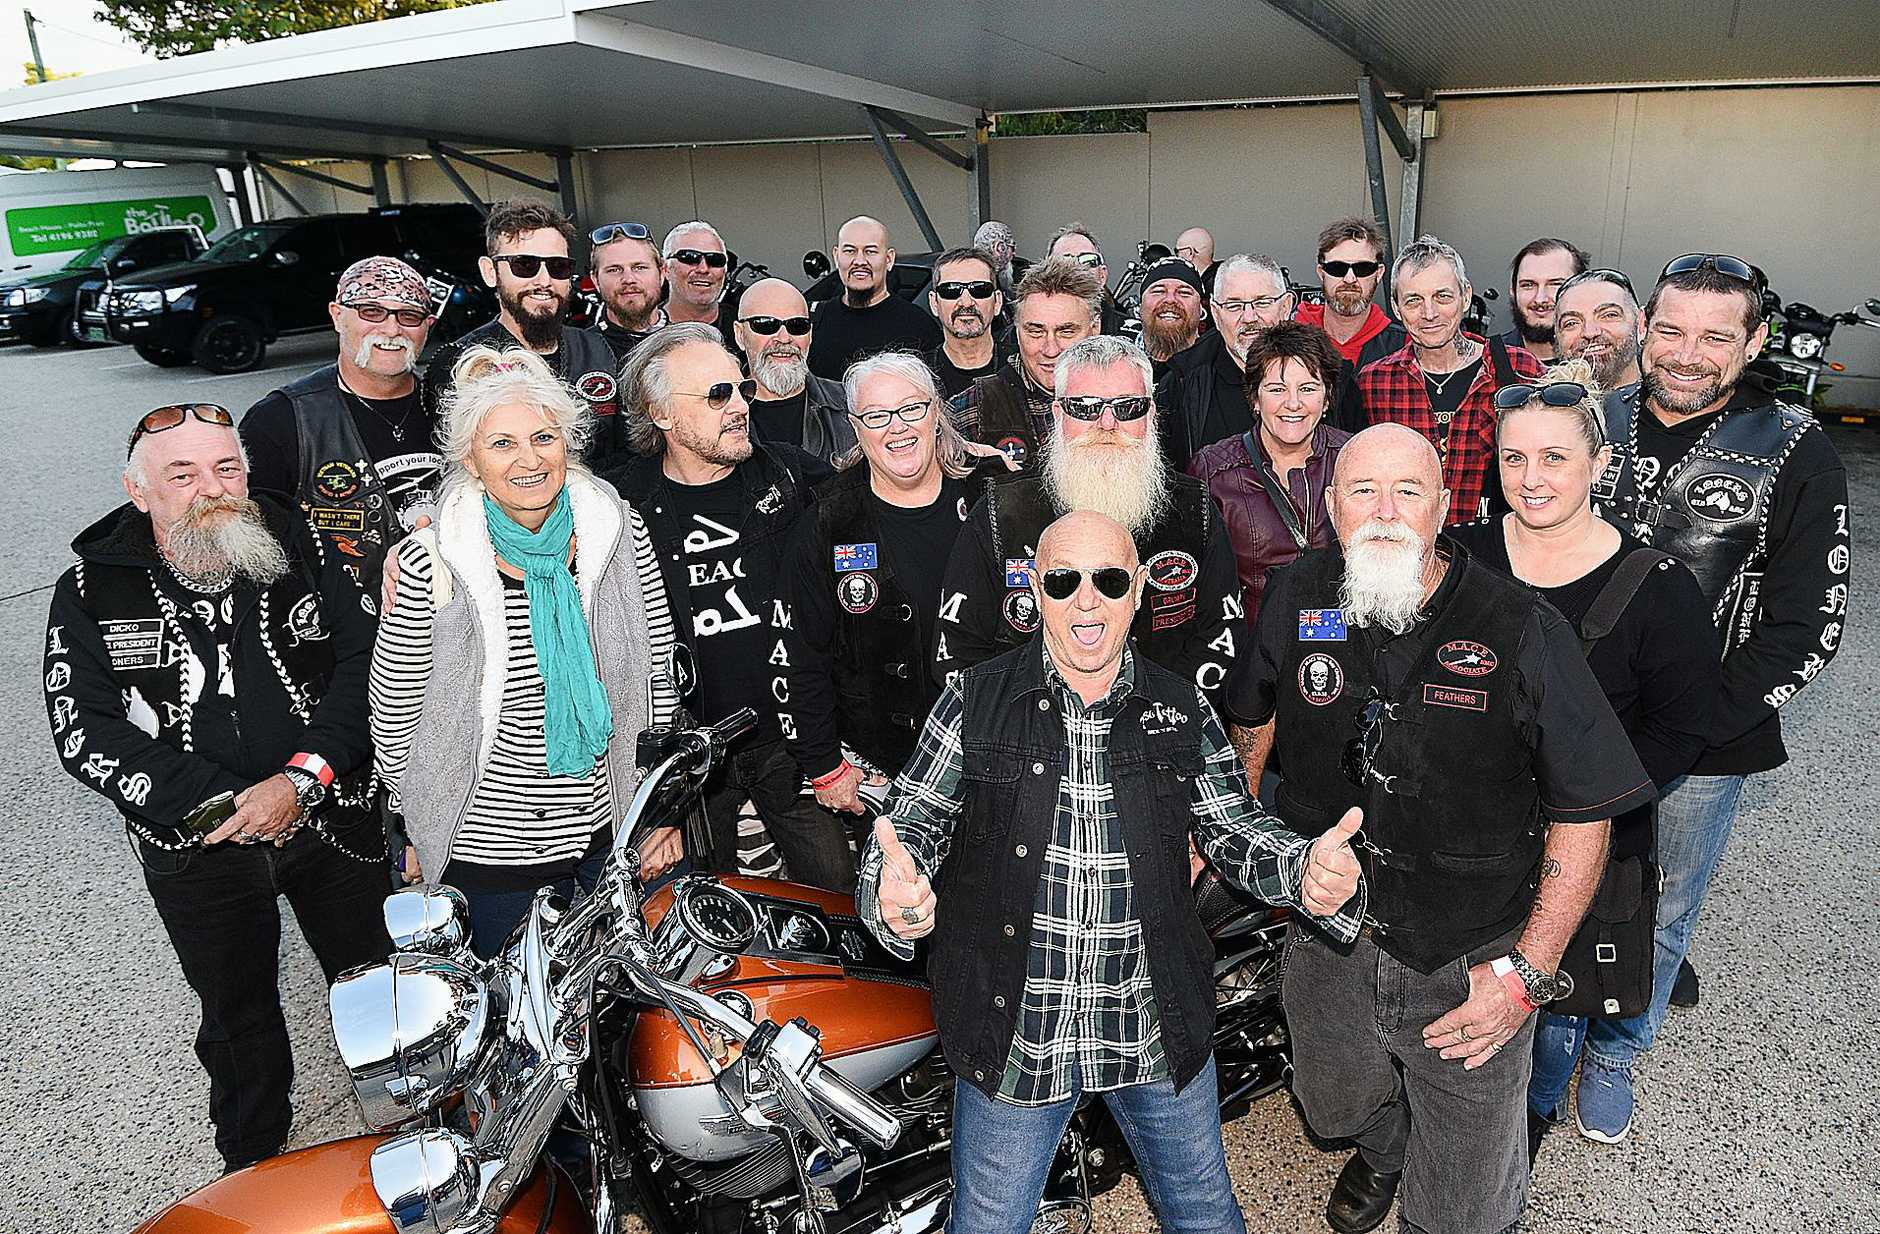 READY TO ROCK: Angry Anderson with motorcycle club members from MACE, Independent Riders and Loners Social Motorcycle Club before performing at the Beach House Hotel. He was helping the groups promote a great cause